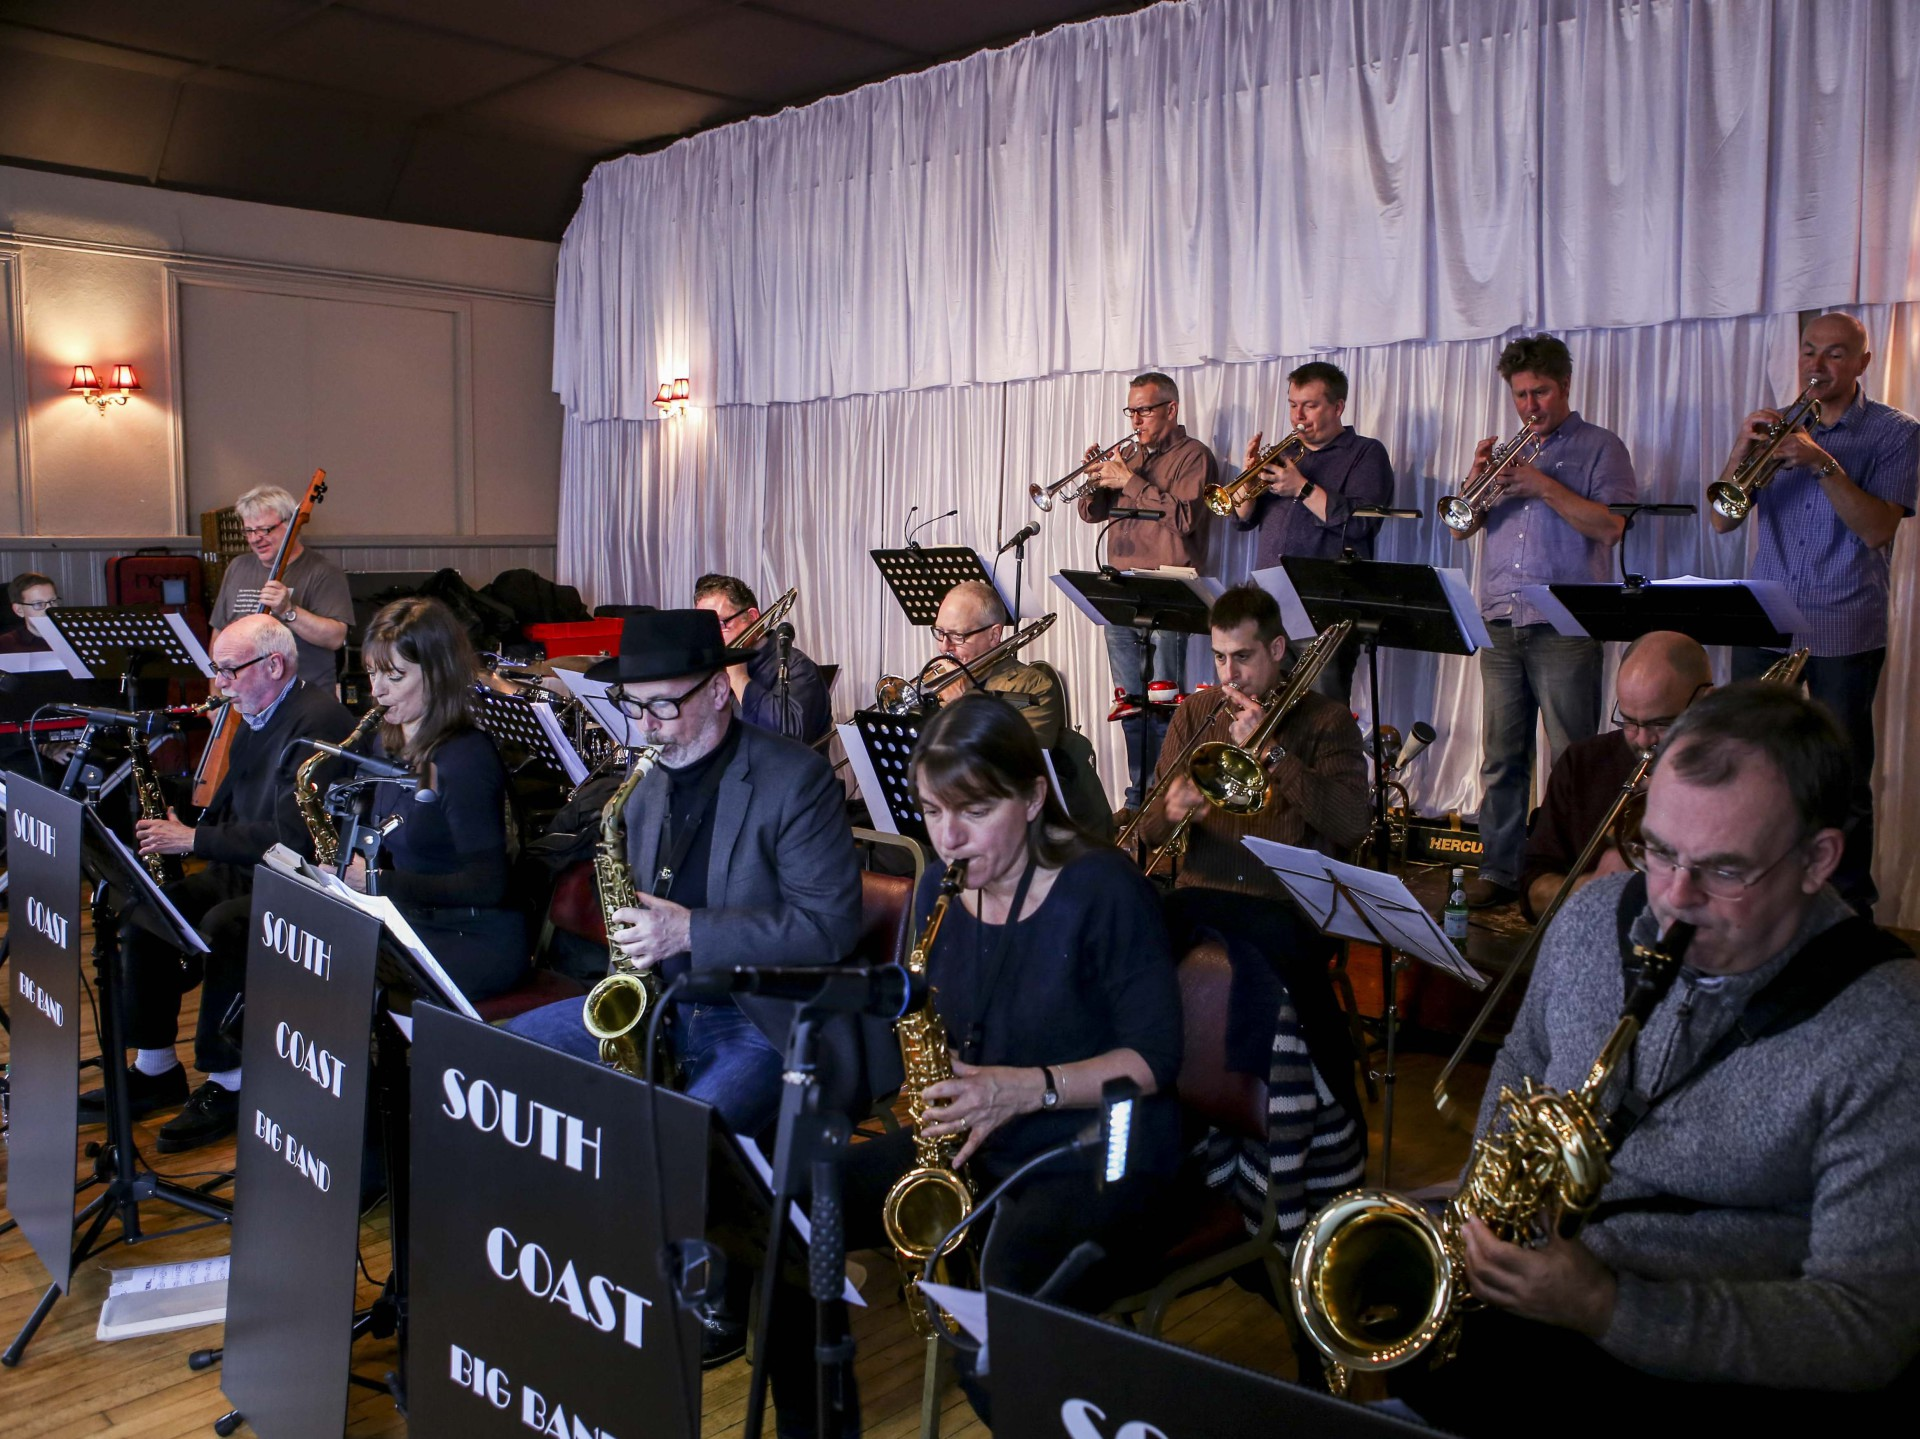 The South Coast Big Band